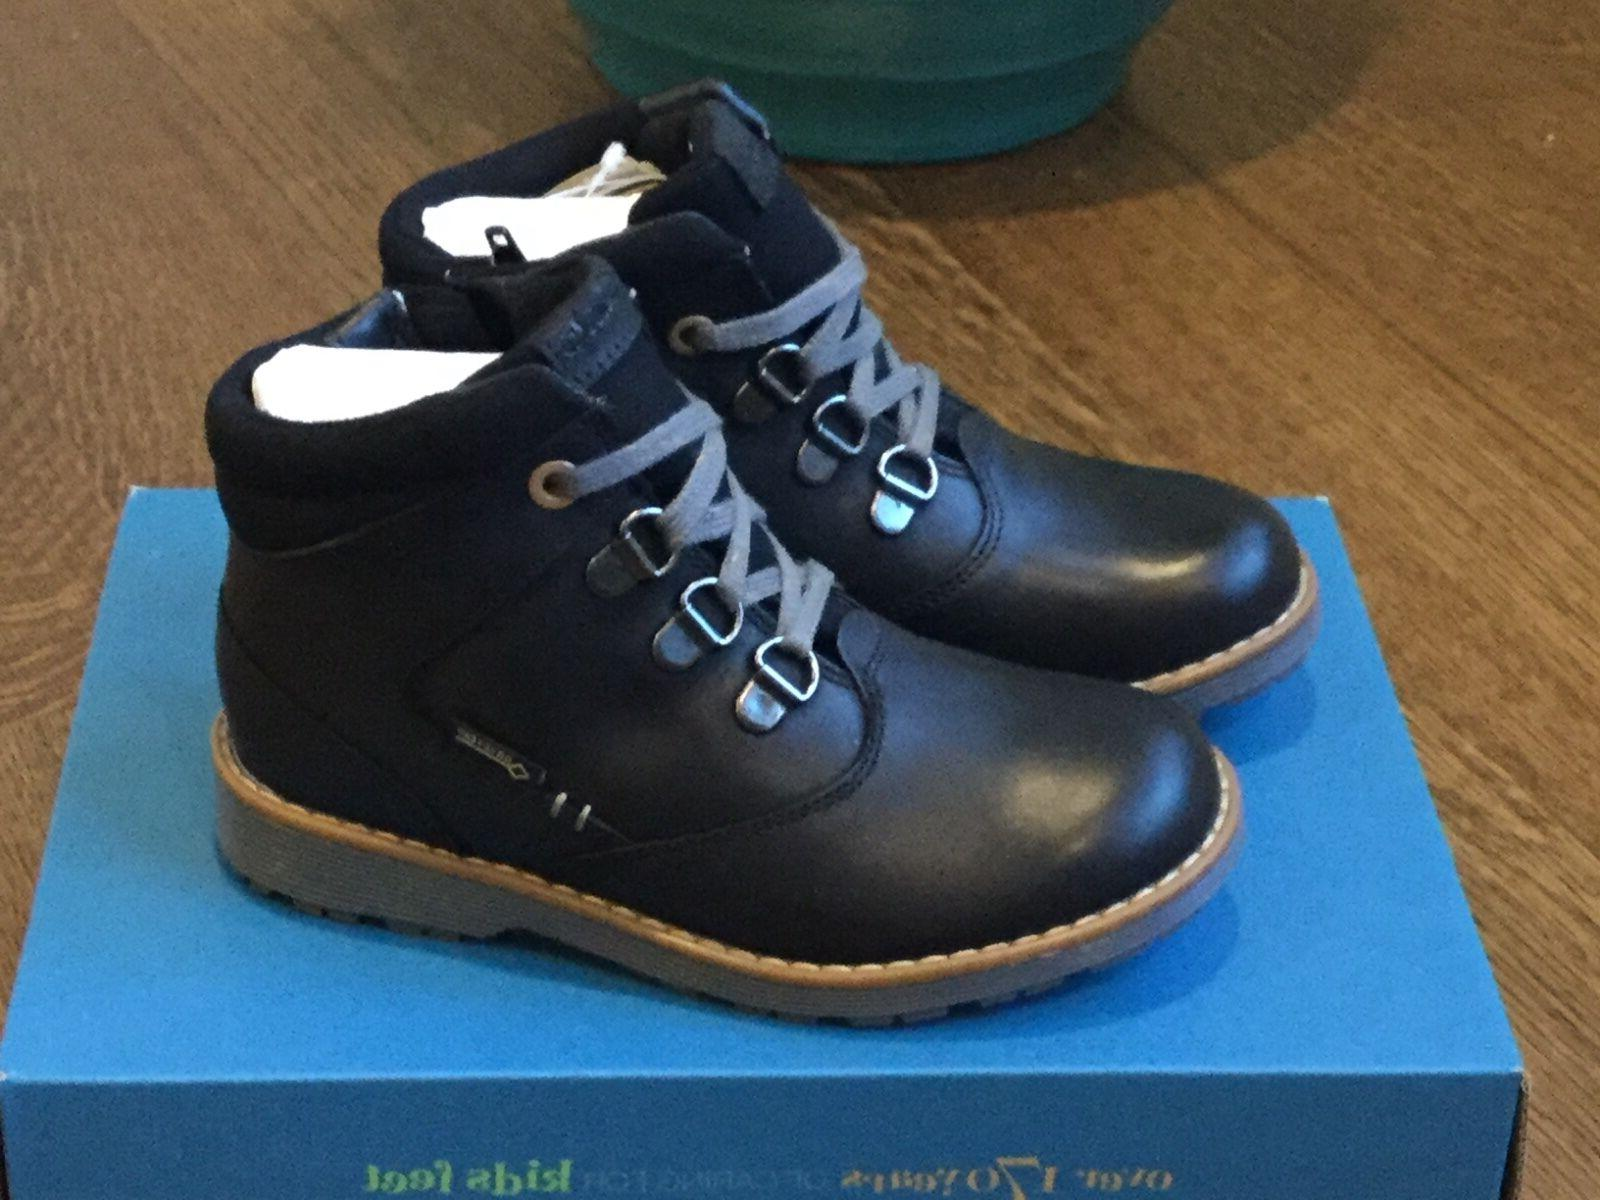 Nwt Boots Boys size